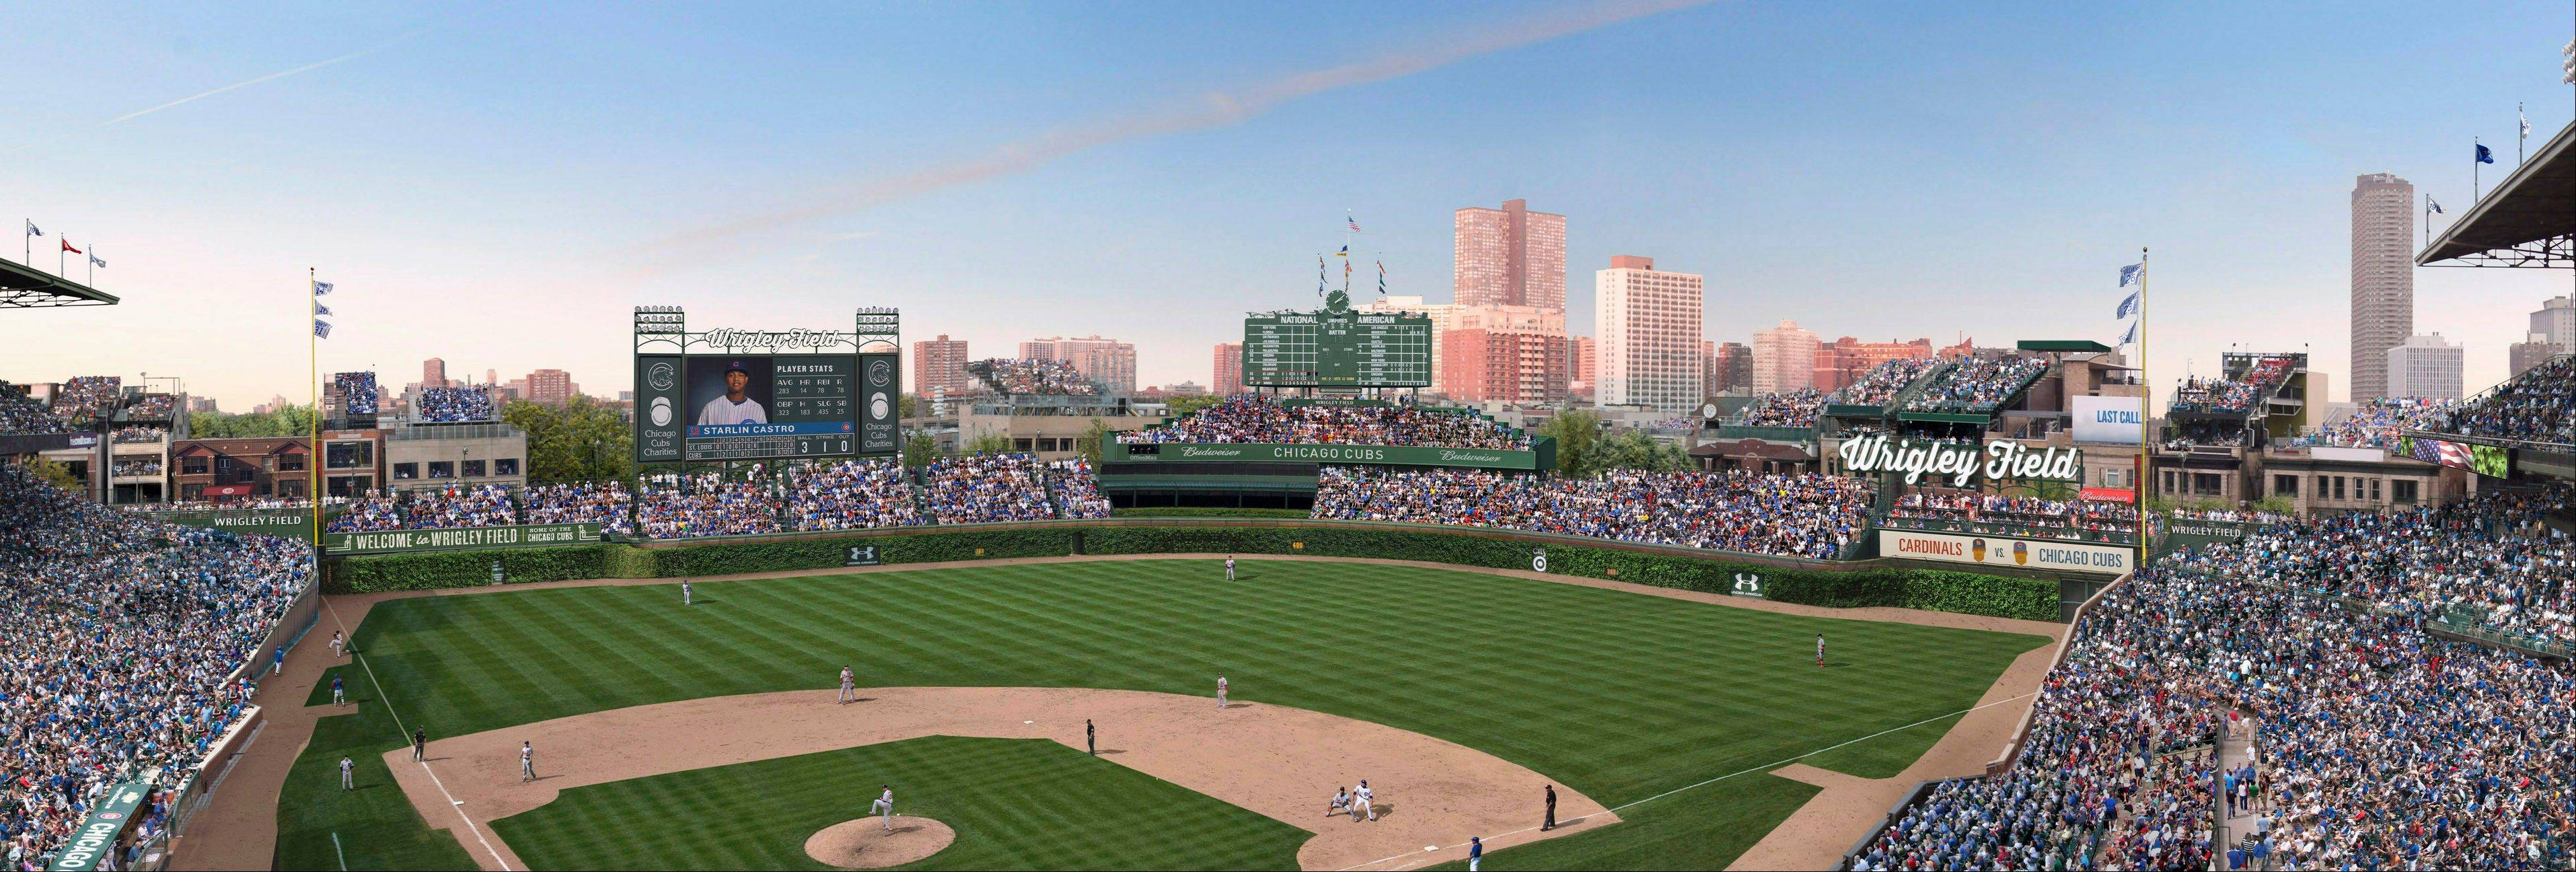 This photo shows an artist rendering provided May 1, 2013 by the Chicago Cubs showing planned renovations at Wrigley Field. On Wednesday, the Chicago City Council aldermen are set voted to approve the proposed renovations at the historic ballpark.